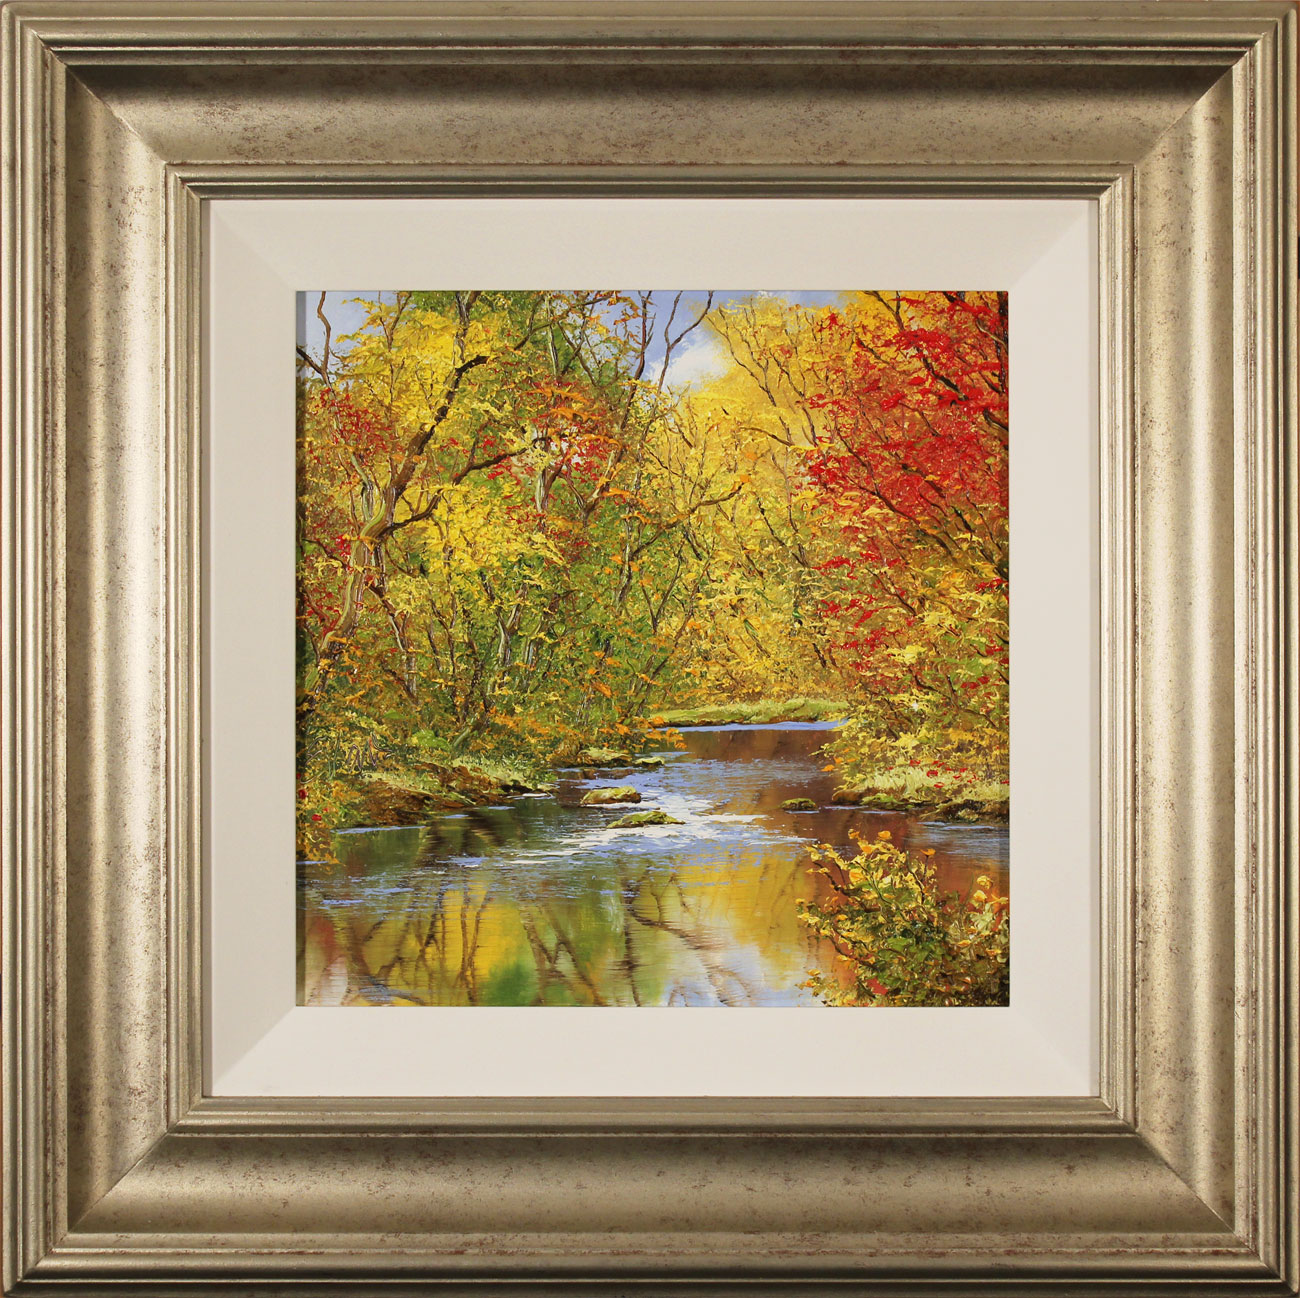 Terry Evans, Original oil painting on canvas, Autumn Gold Click to enlarge